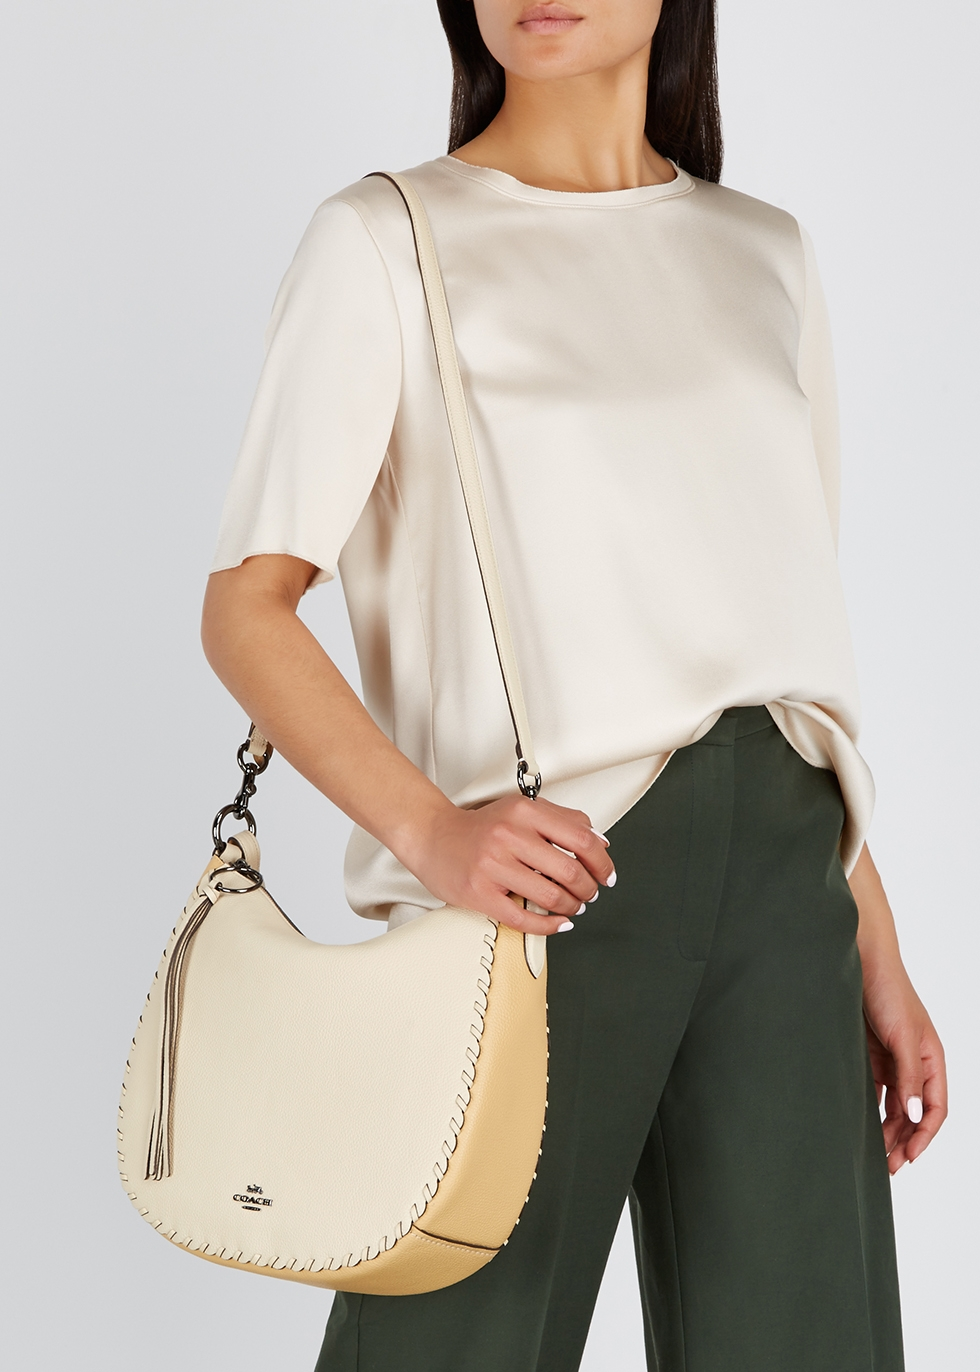 Sutton ivory leather hobo bag - Coach